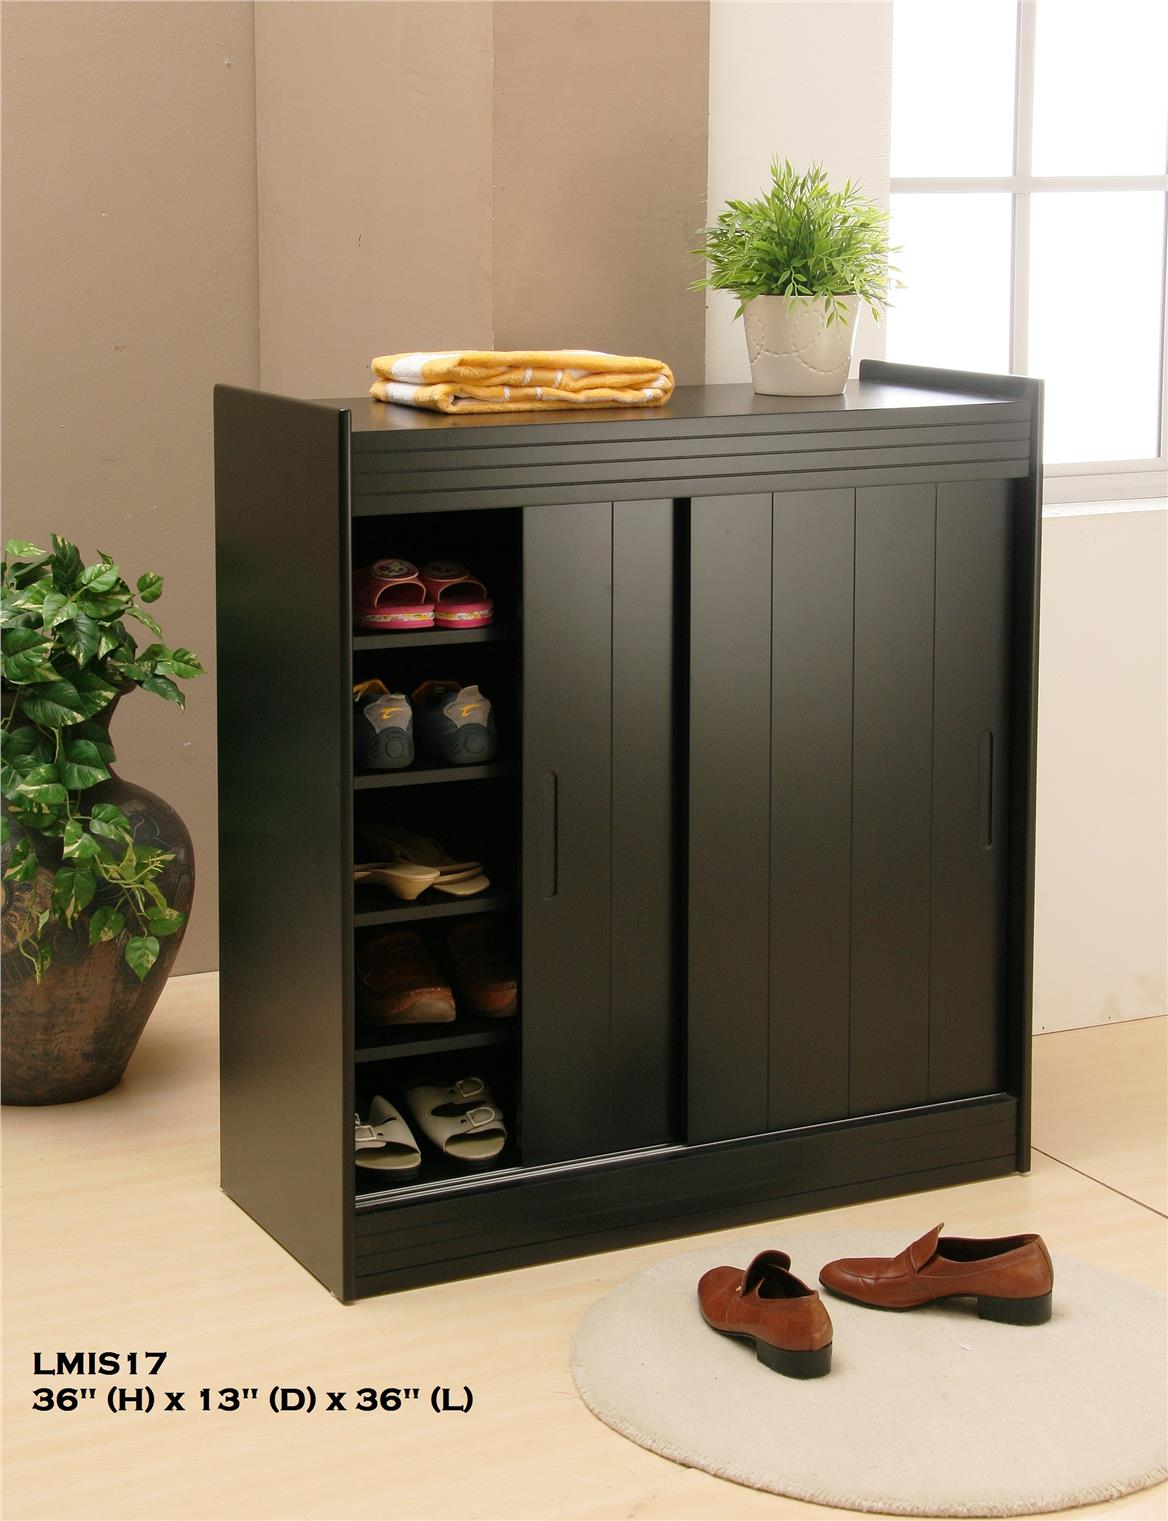 NiceHome furniture Great Value shoe cabinet model - LMIS17